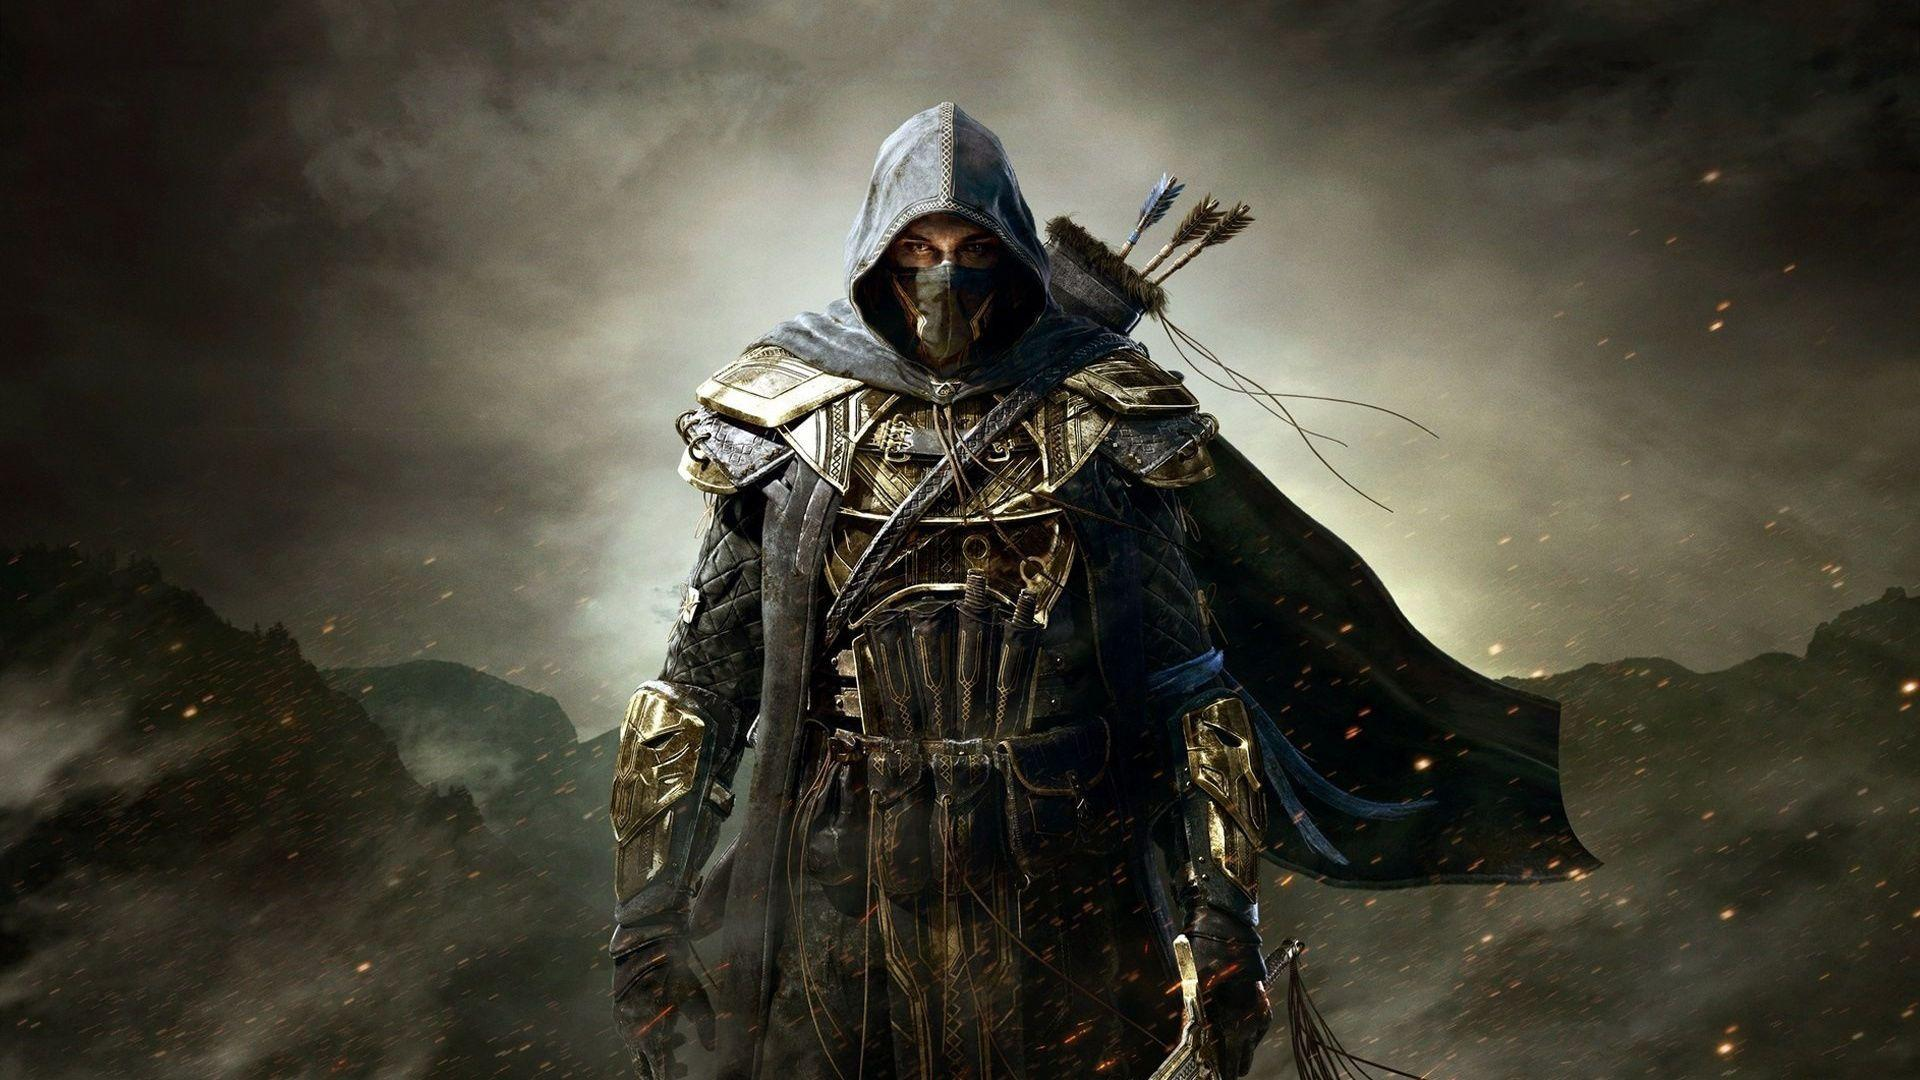 35 Best Game Wallpapers HD And Photos